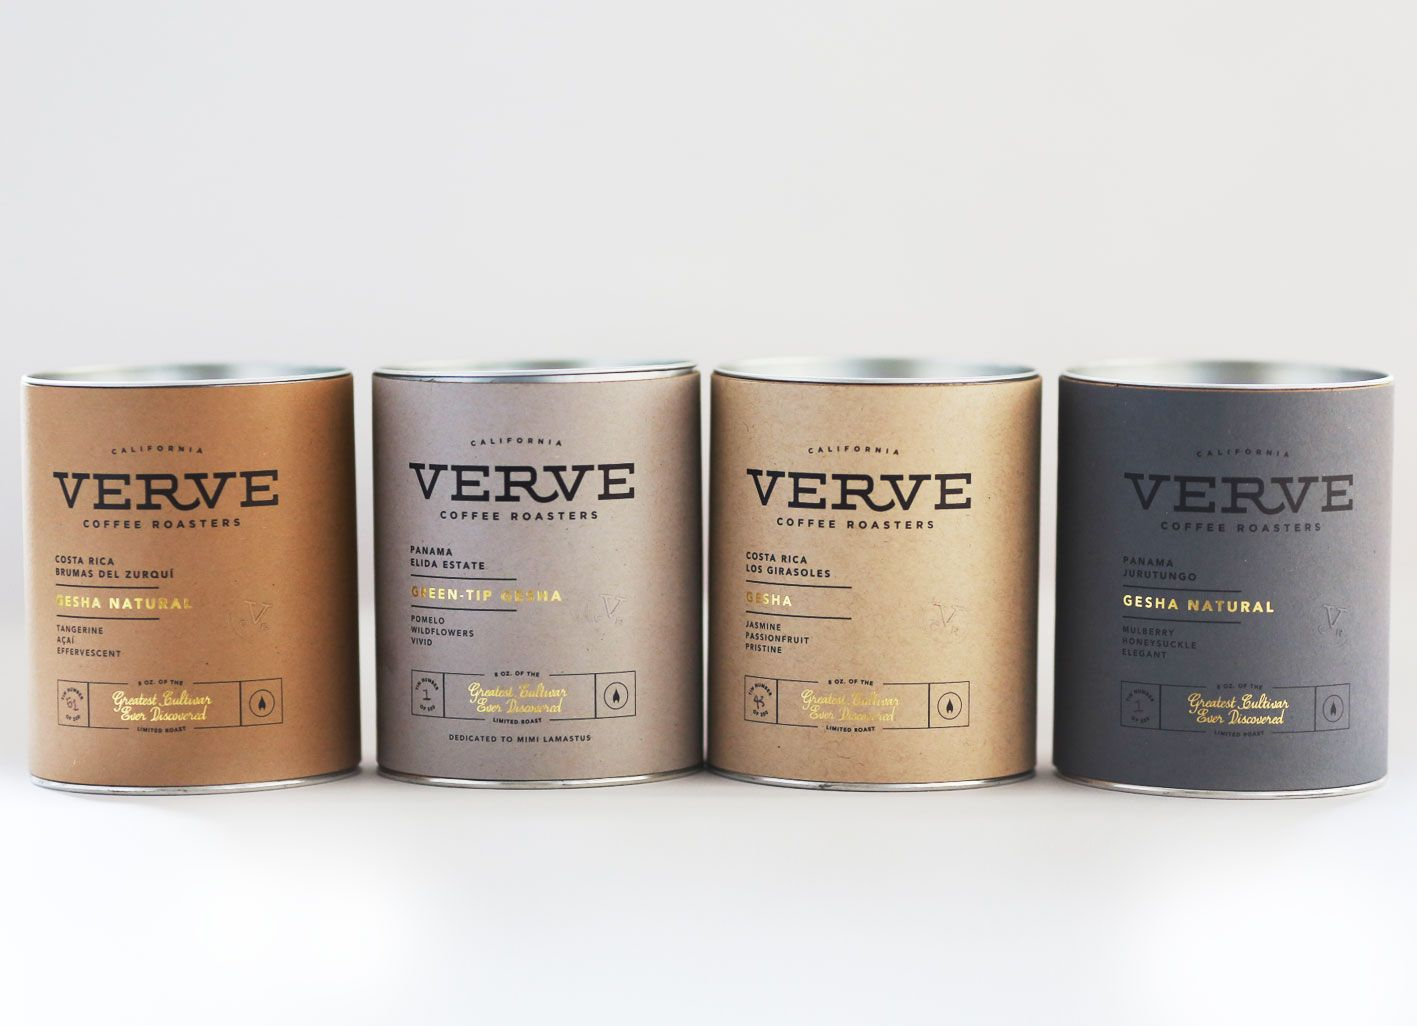 Verve Coffee's 2014 Gesha Set includes their renowned